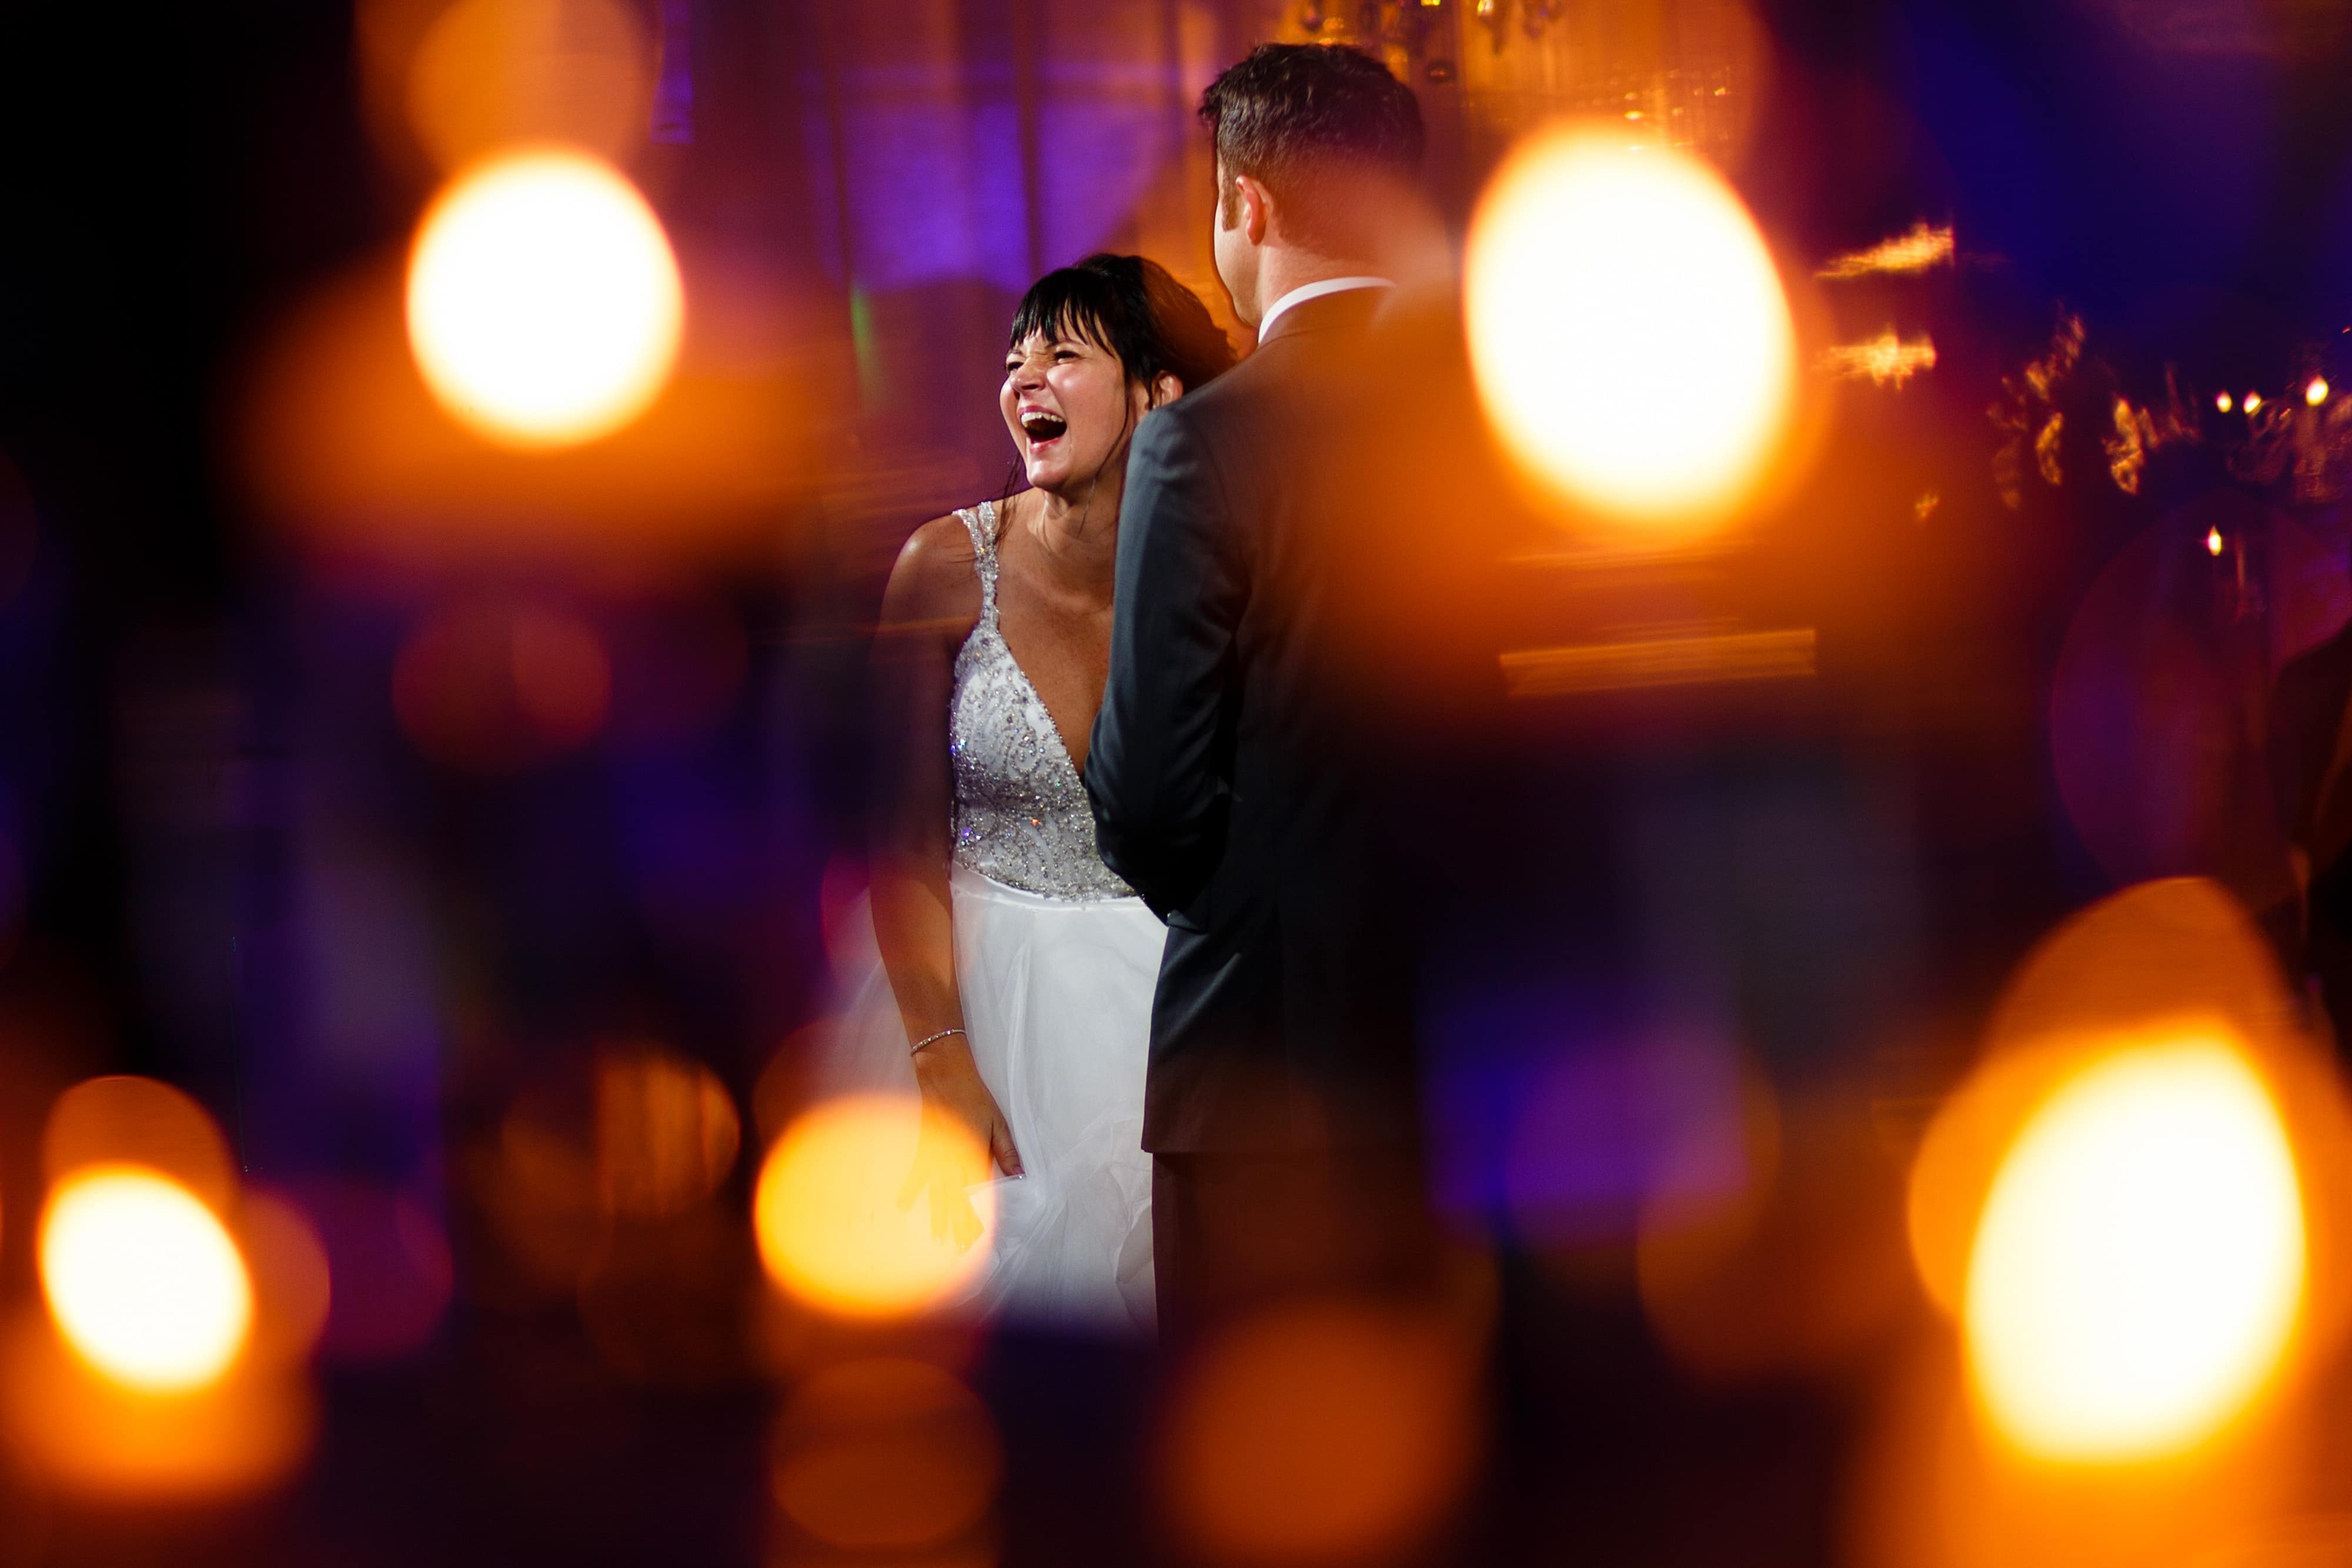 Chelsea and Ori share their first dance during their Room 1520 wedding in October